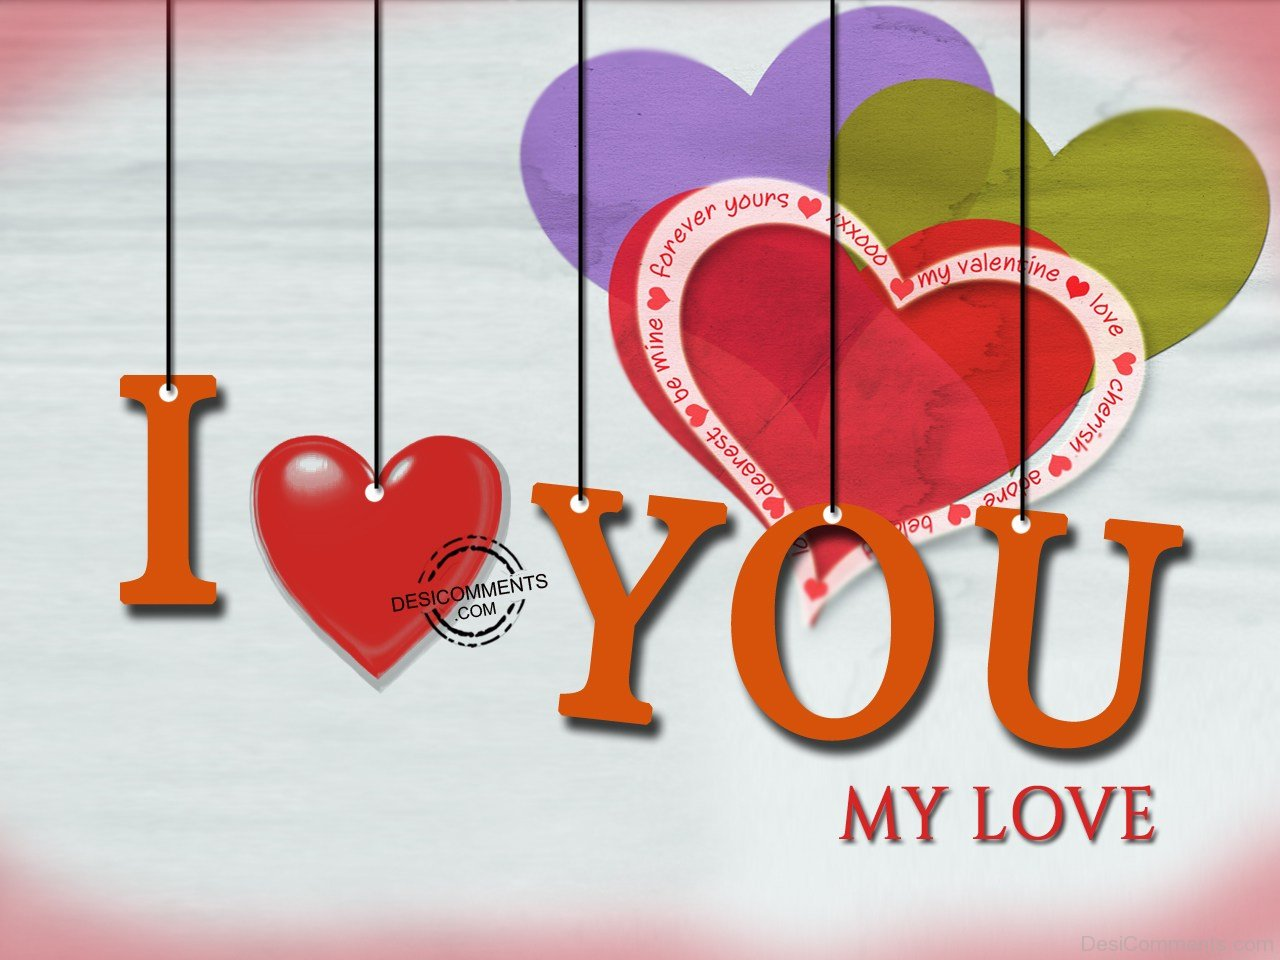 I Love You My Love Wallpaper : I Love You,MY Love - Desicomments.com